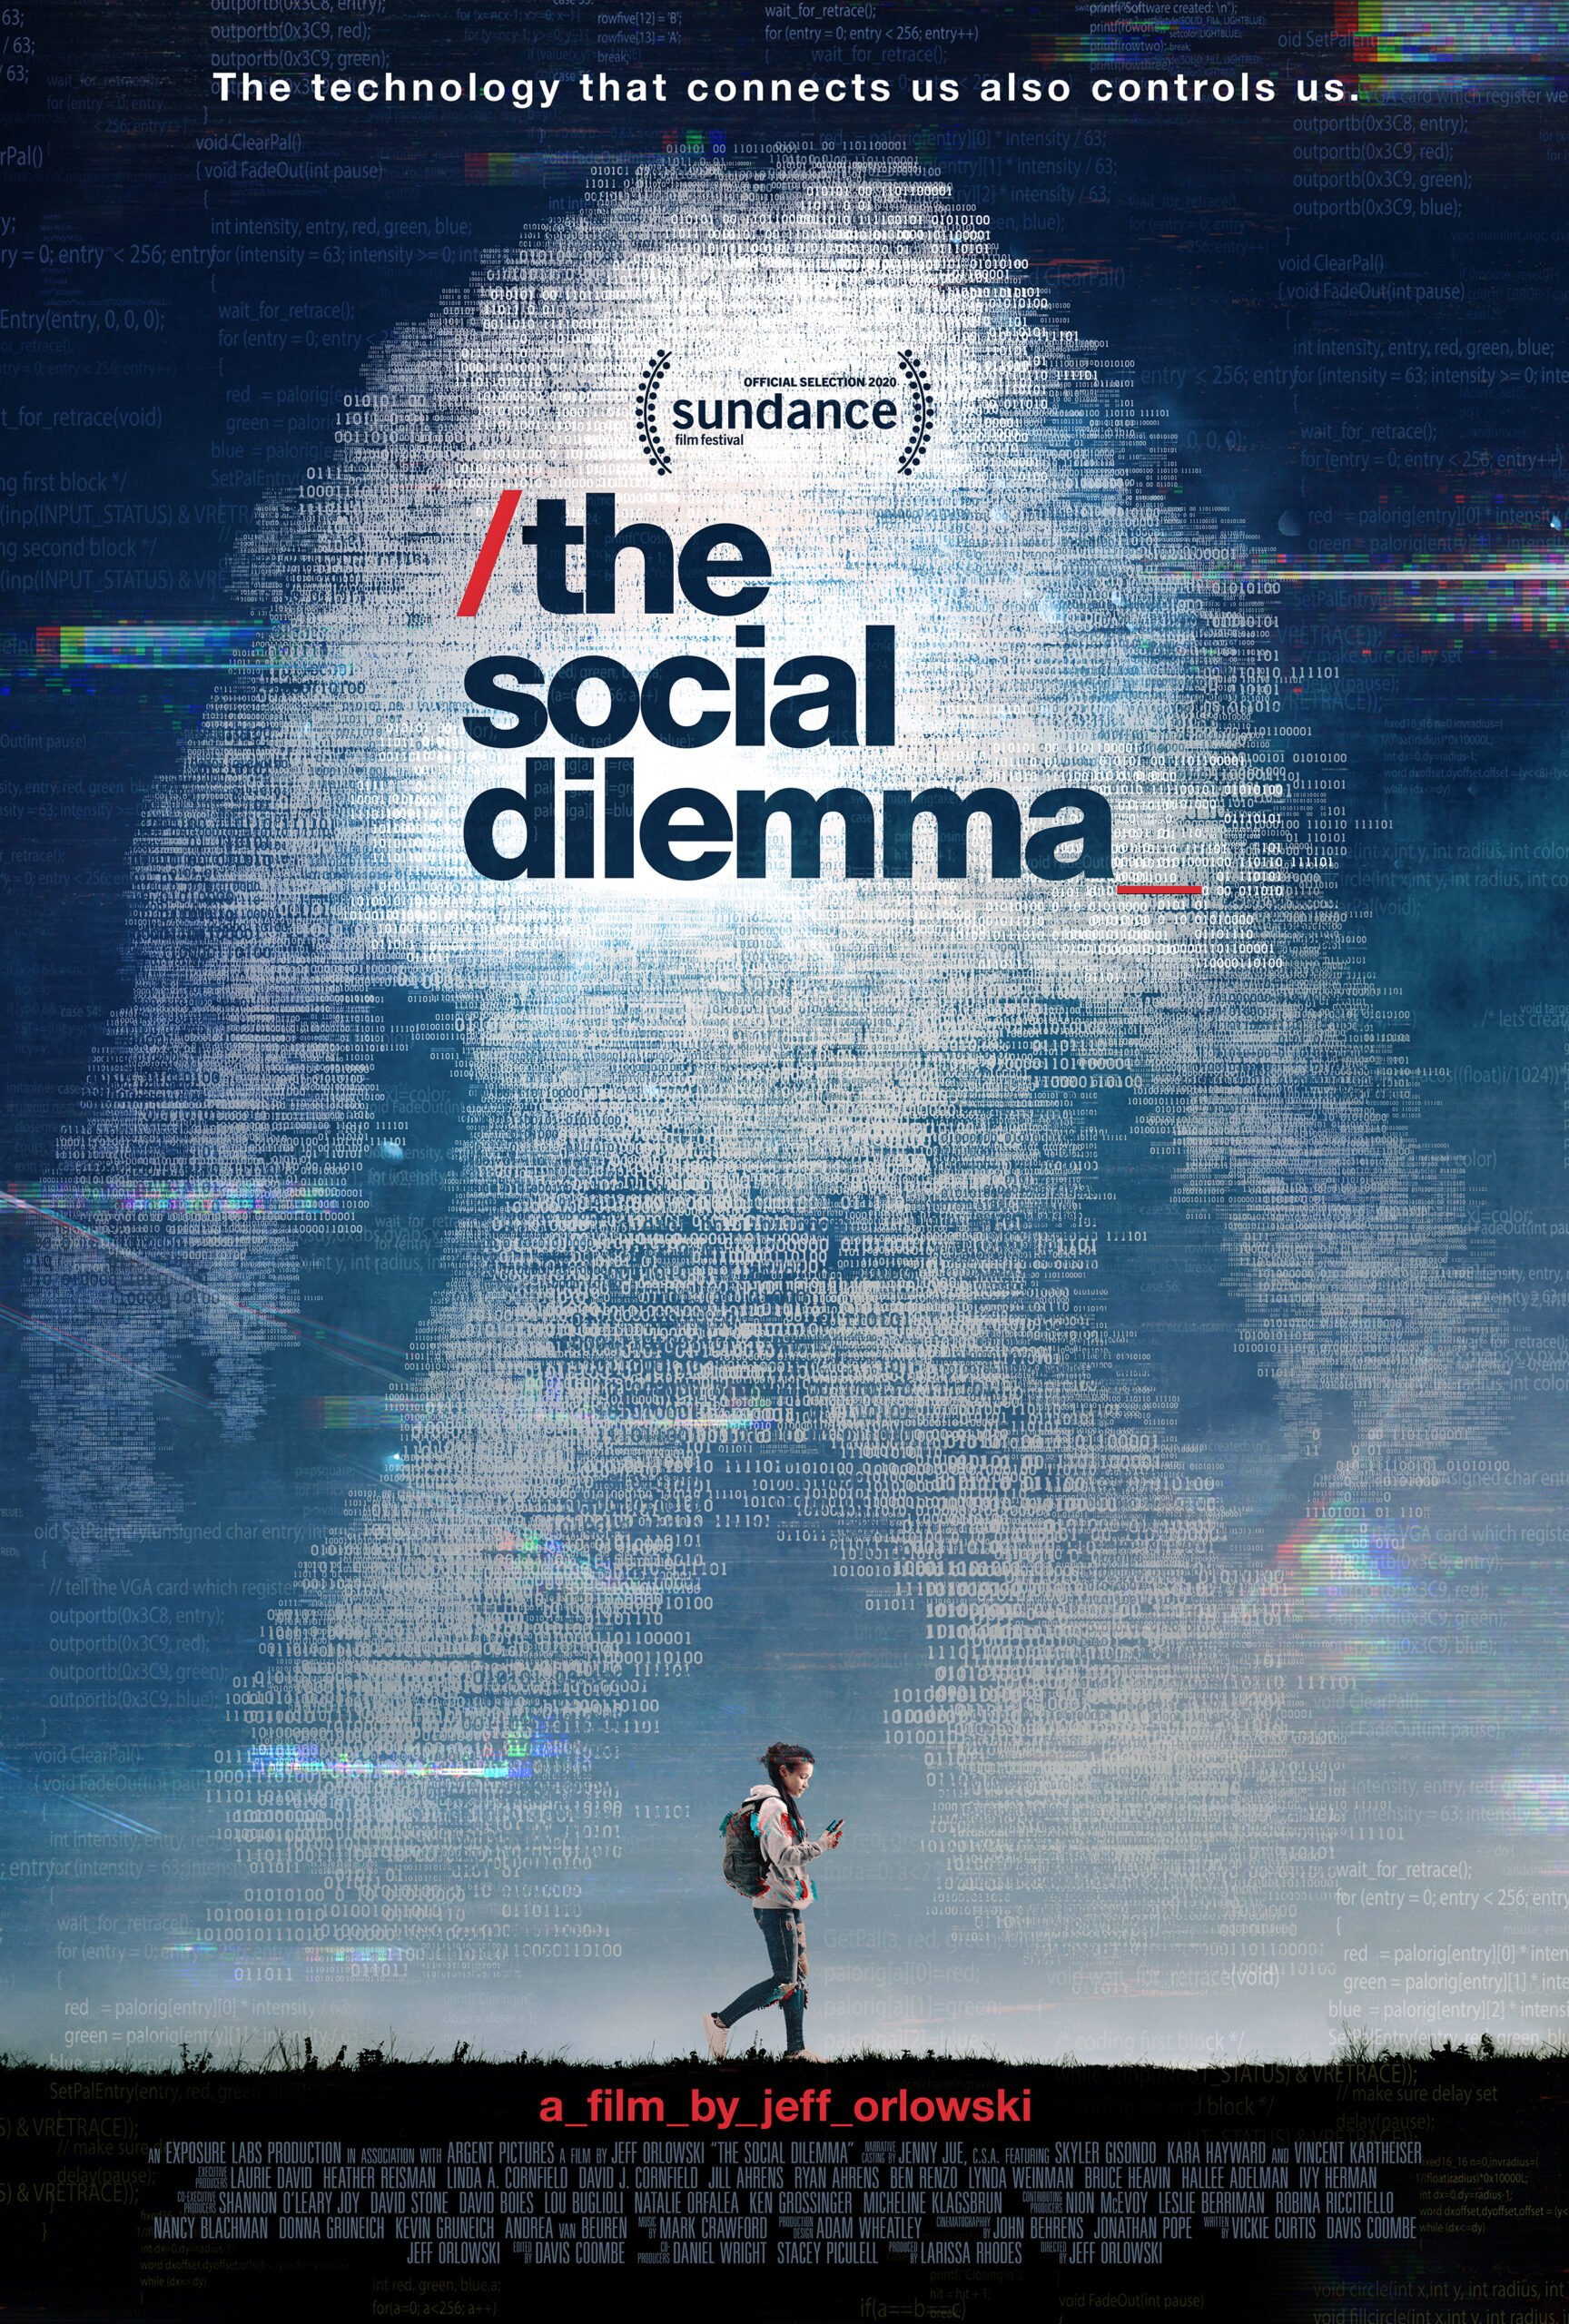 THE_SOCIAL_DILEMMA_MONSTER_HI_RES_JPEG-scaled (1)